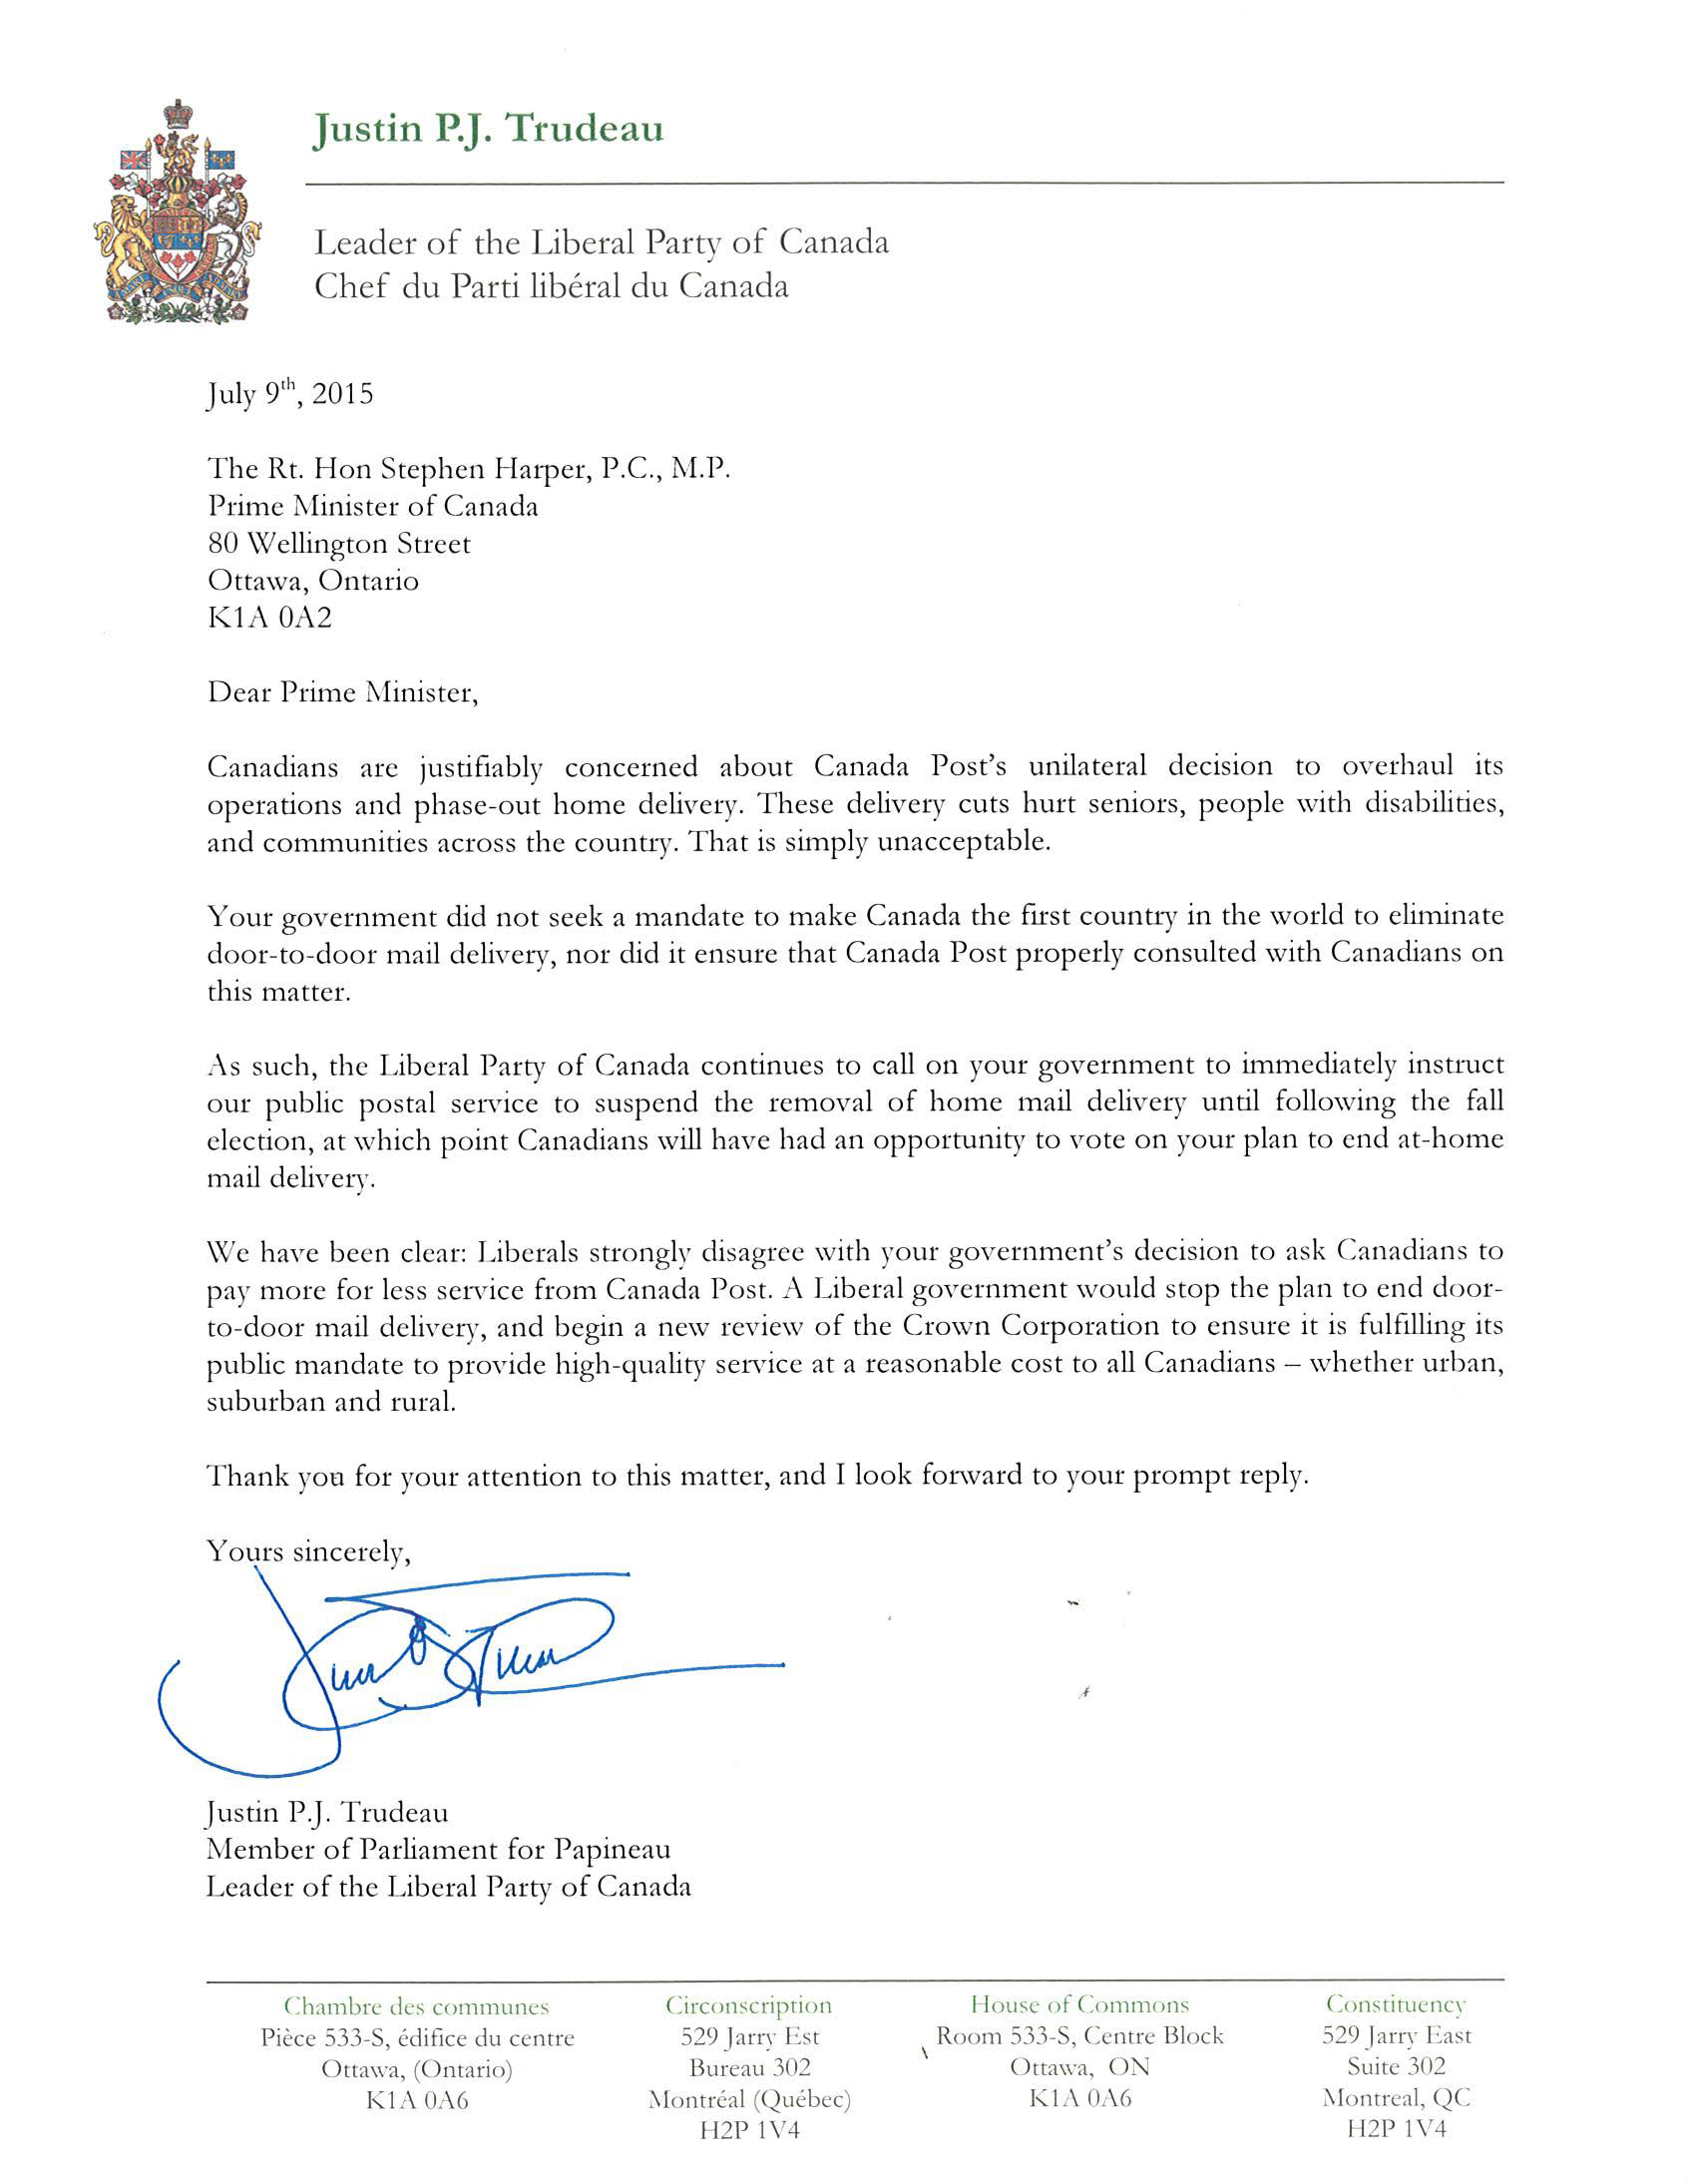 Liberal Party Letter To Prime Minister